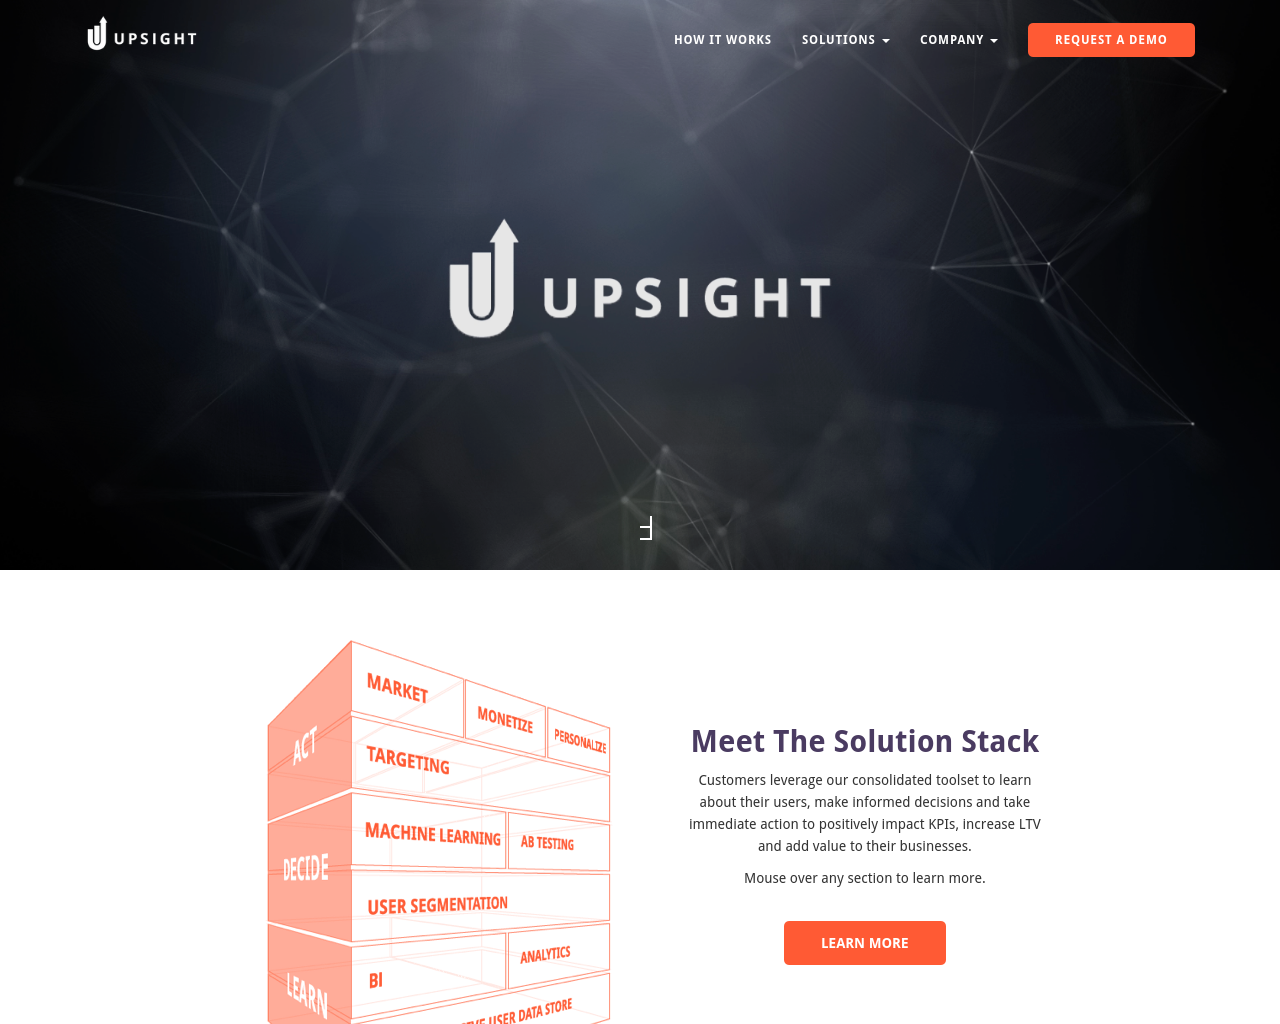 UPSIGHT-Advertising-Reviews-Pricing